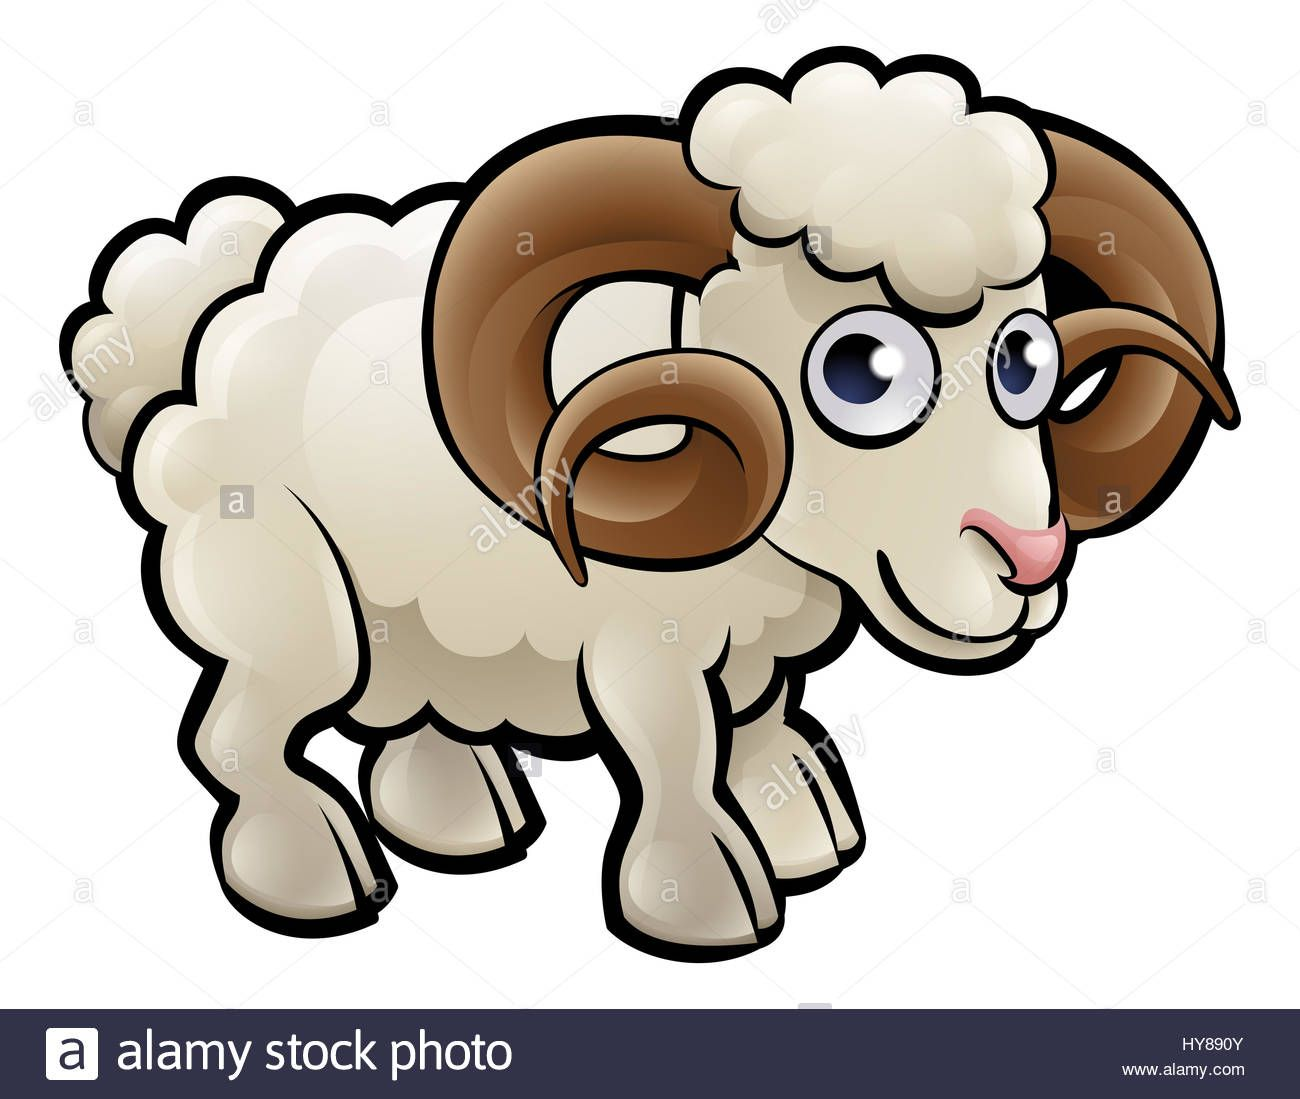 Image result for pictures of a ram cartoon Cartoon